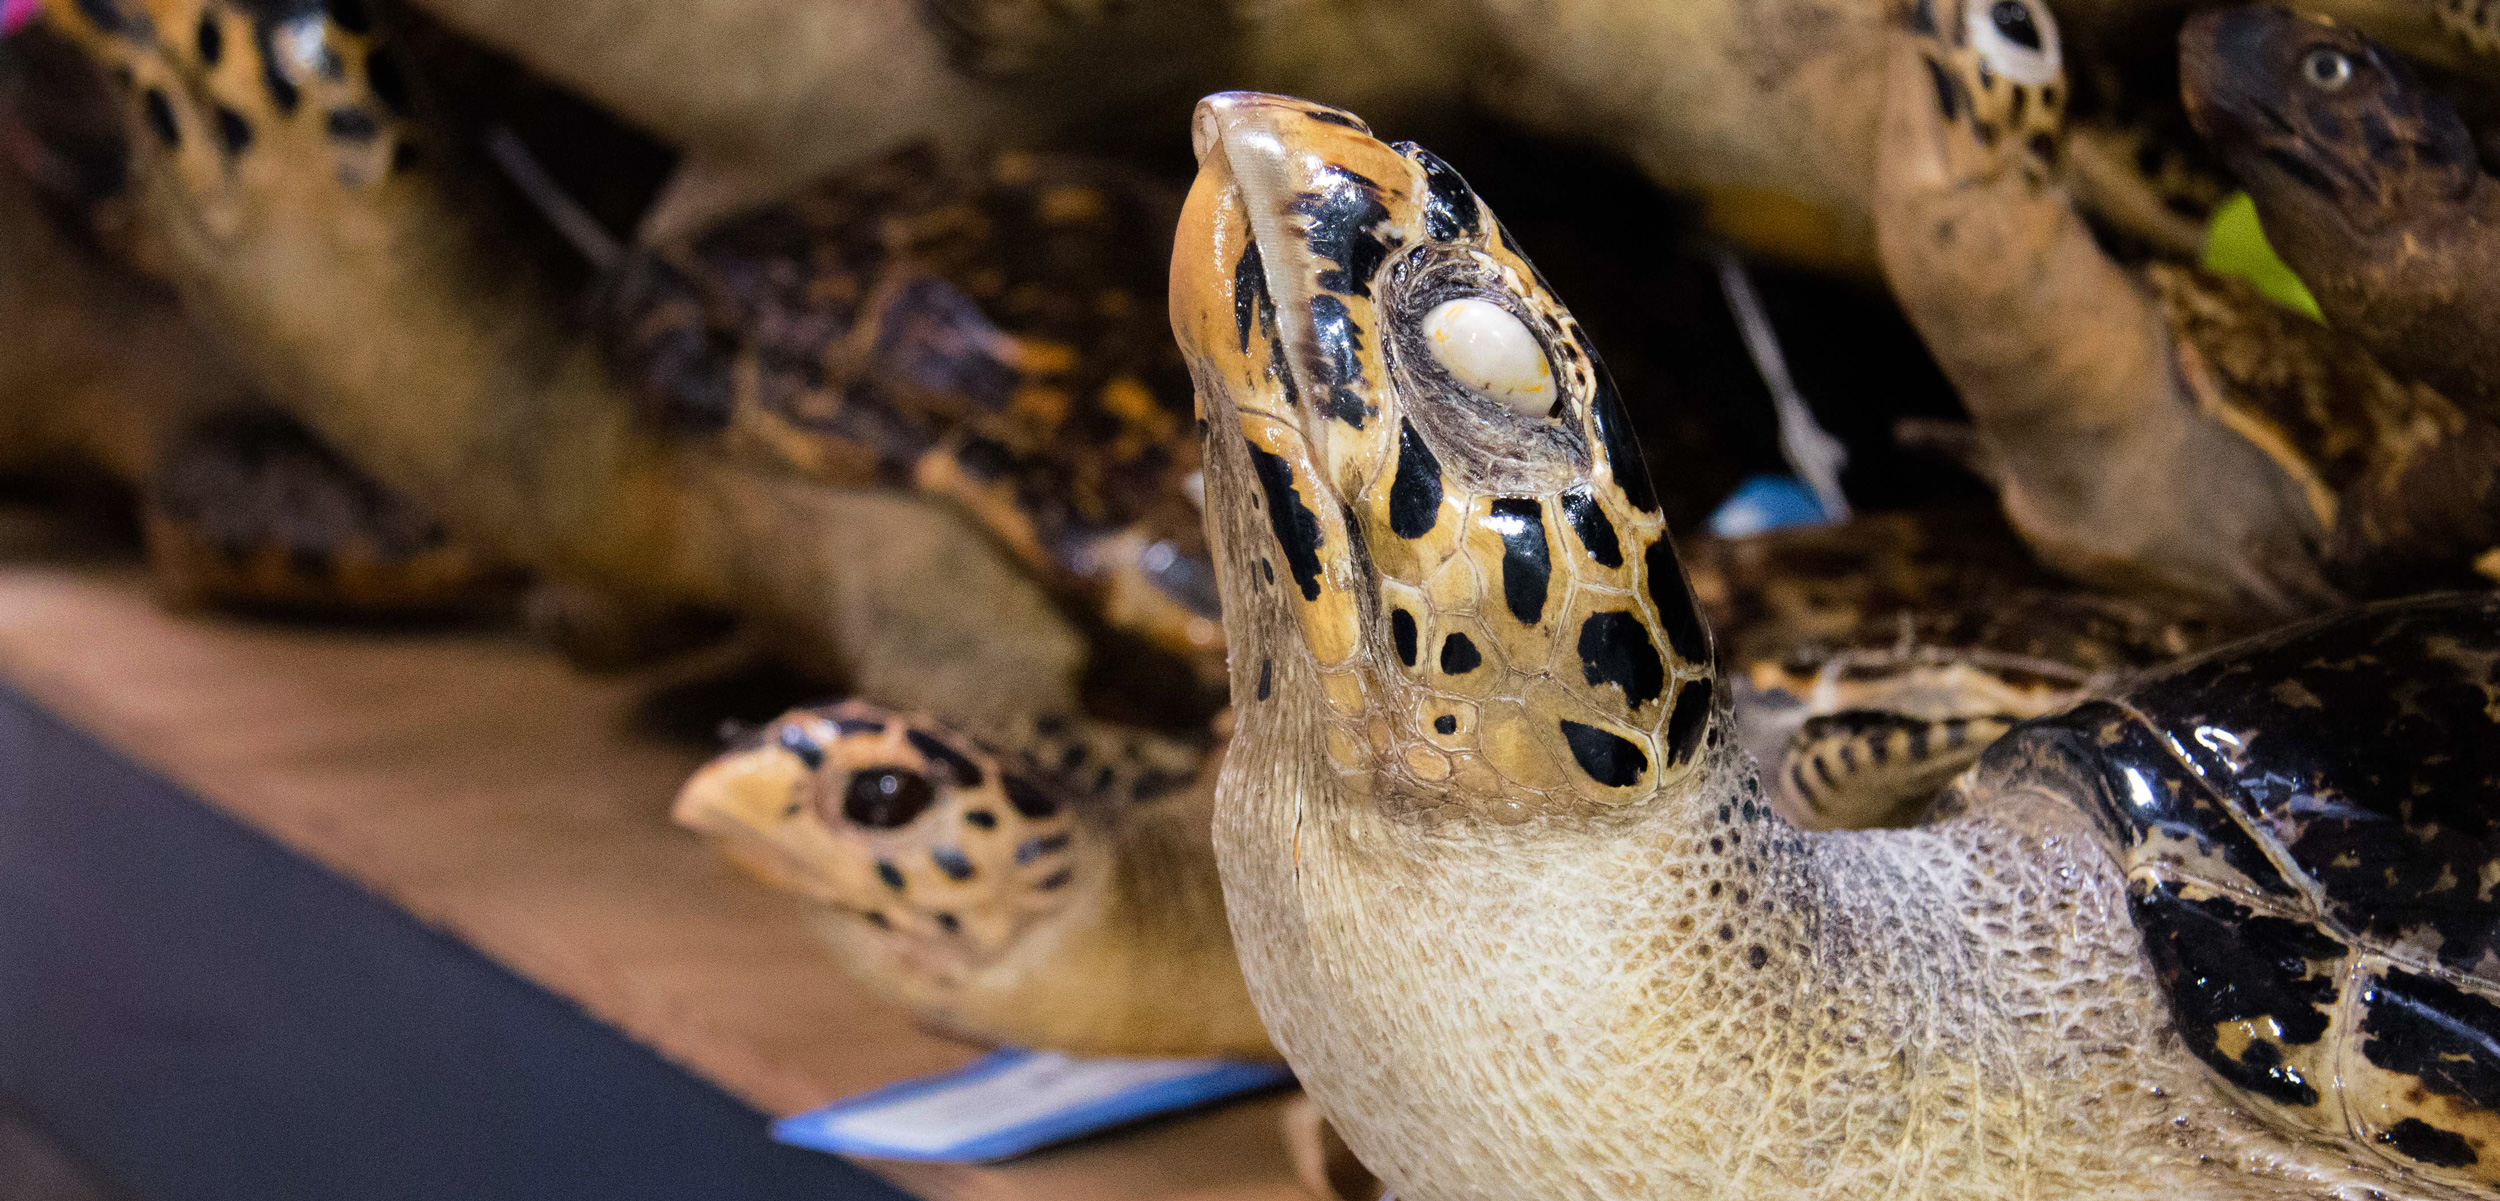 Mounted hawksbill sea turtles are among the many coastal wildlife products housed at the National Wildlife Property Repository near Denver, Colorado. The critically endangered turtles are often poached from the wild for their meat, skin, and shells. Photo by Gloria Dickie